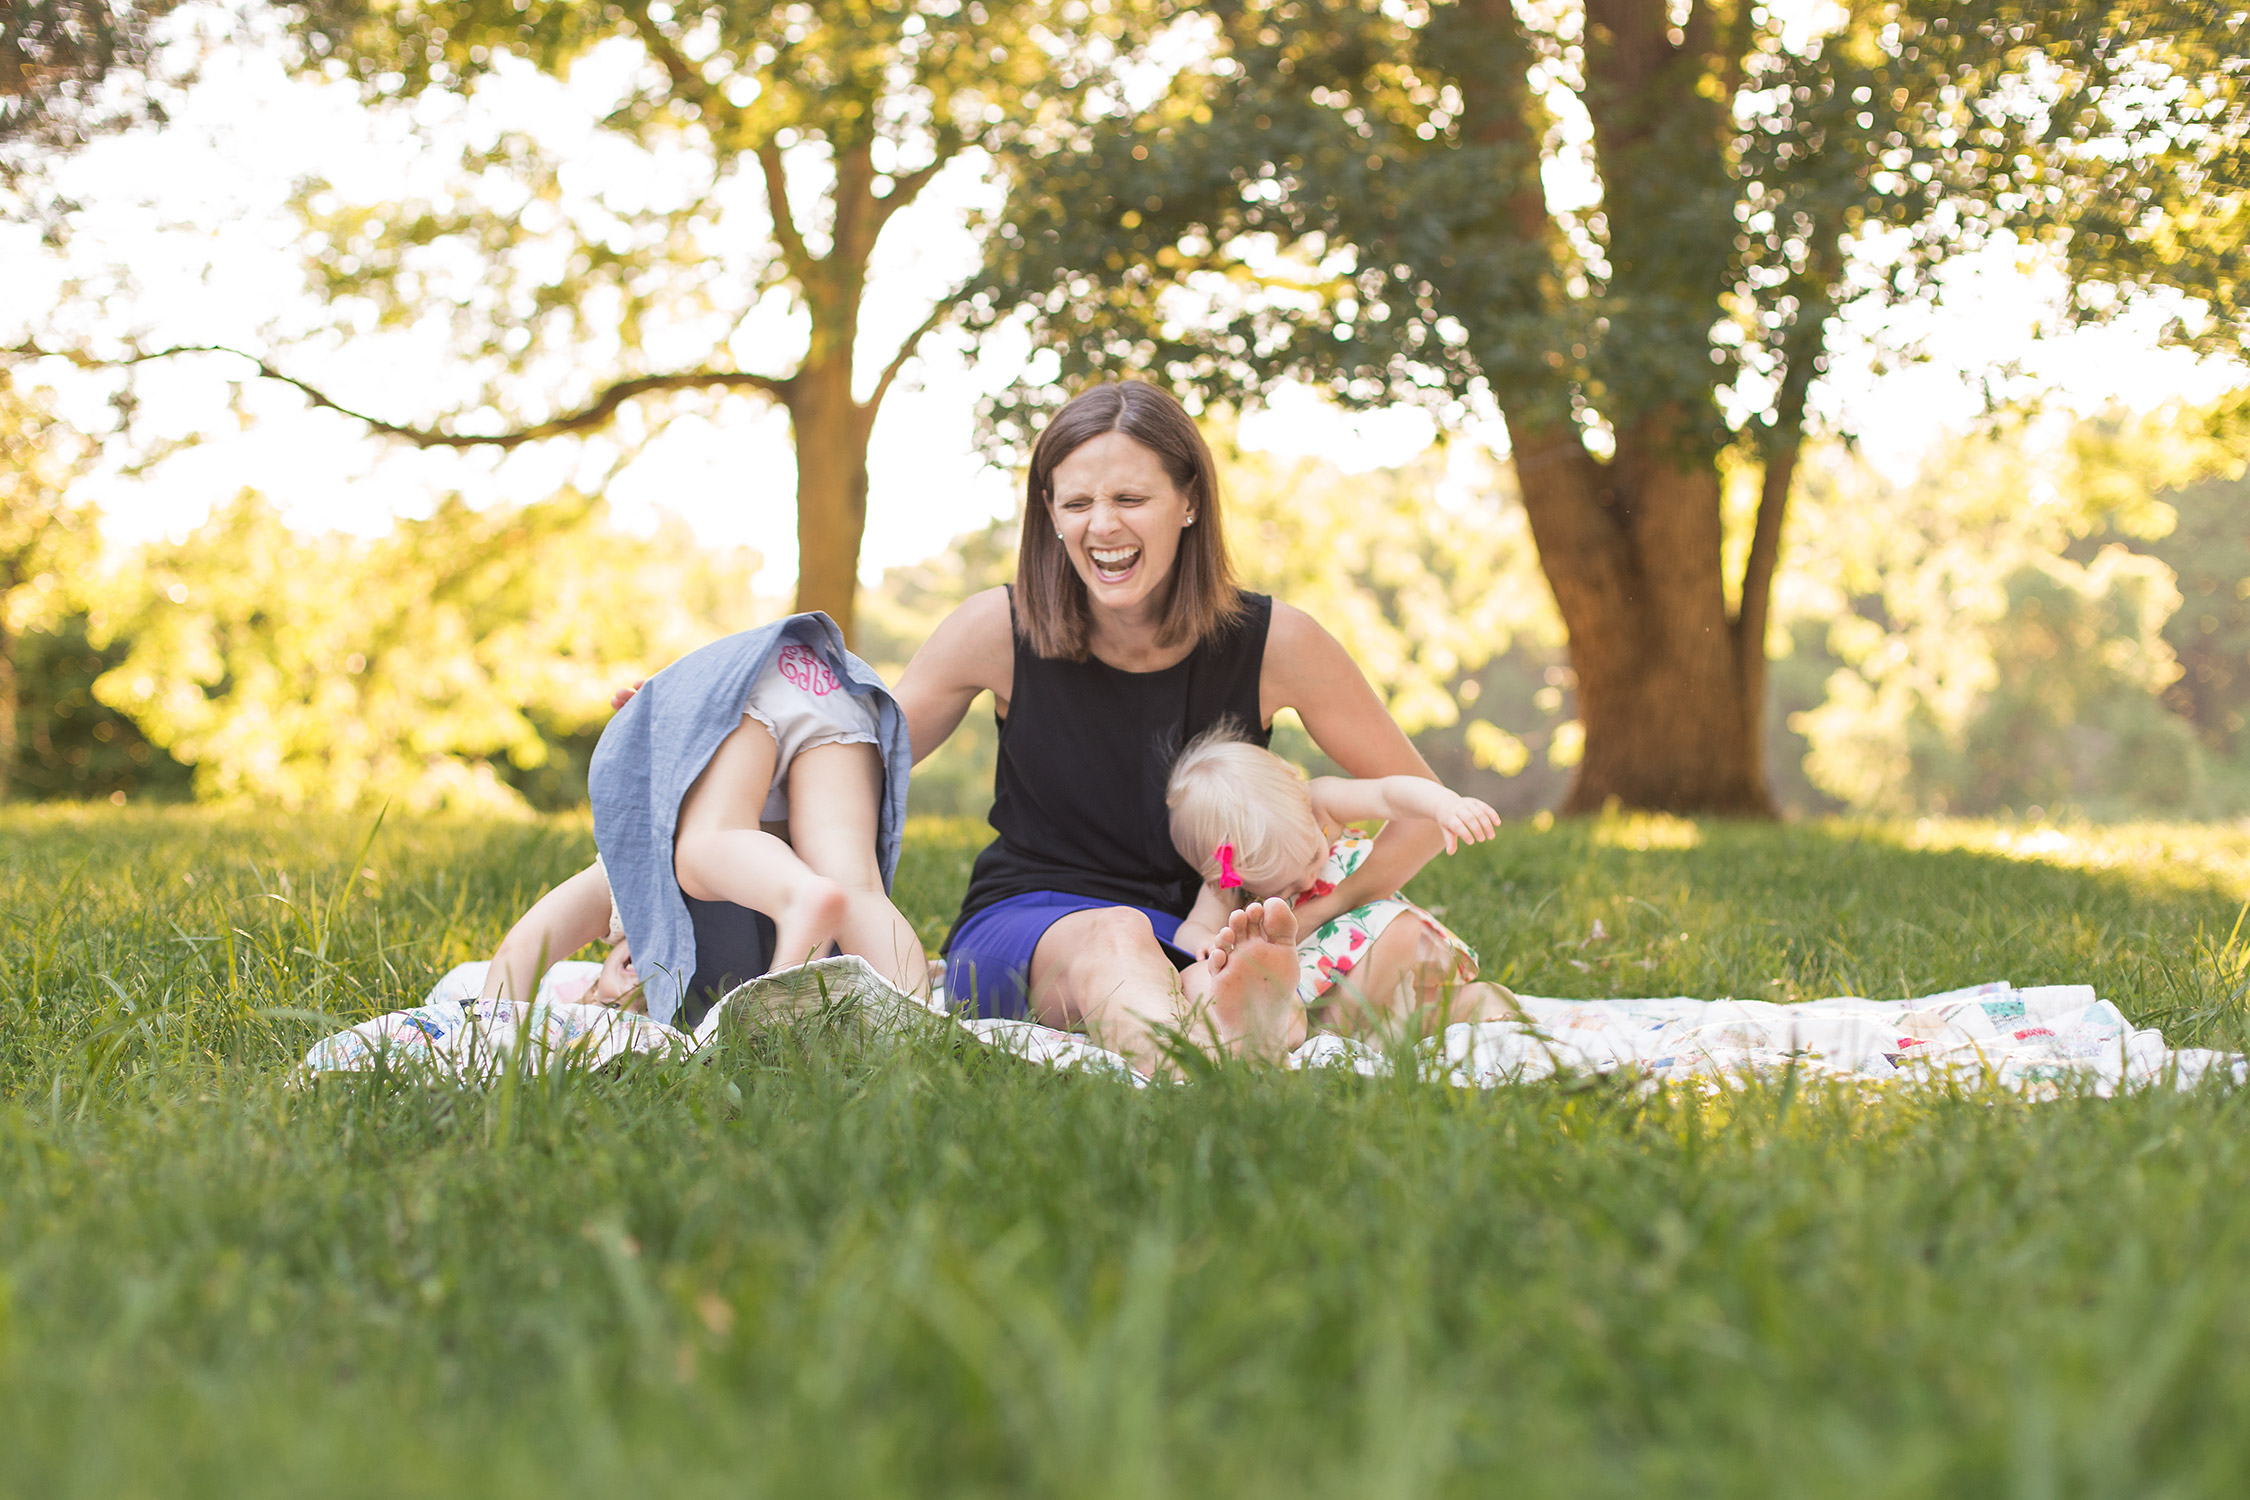 Mommy laughing at one of her daughters in Faust Park | St. Louis Family Photographer